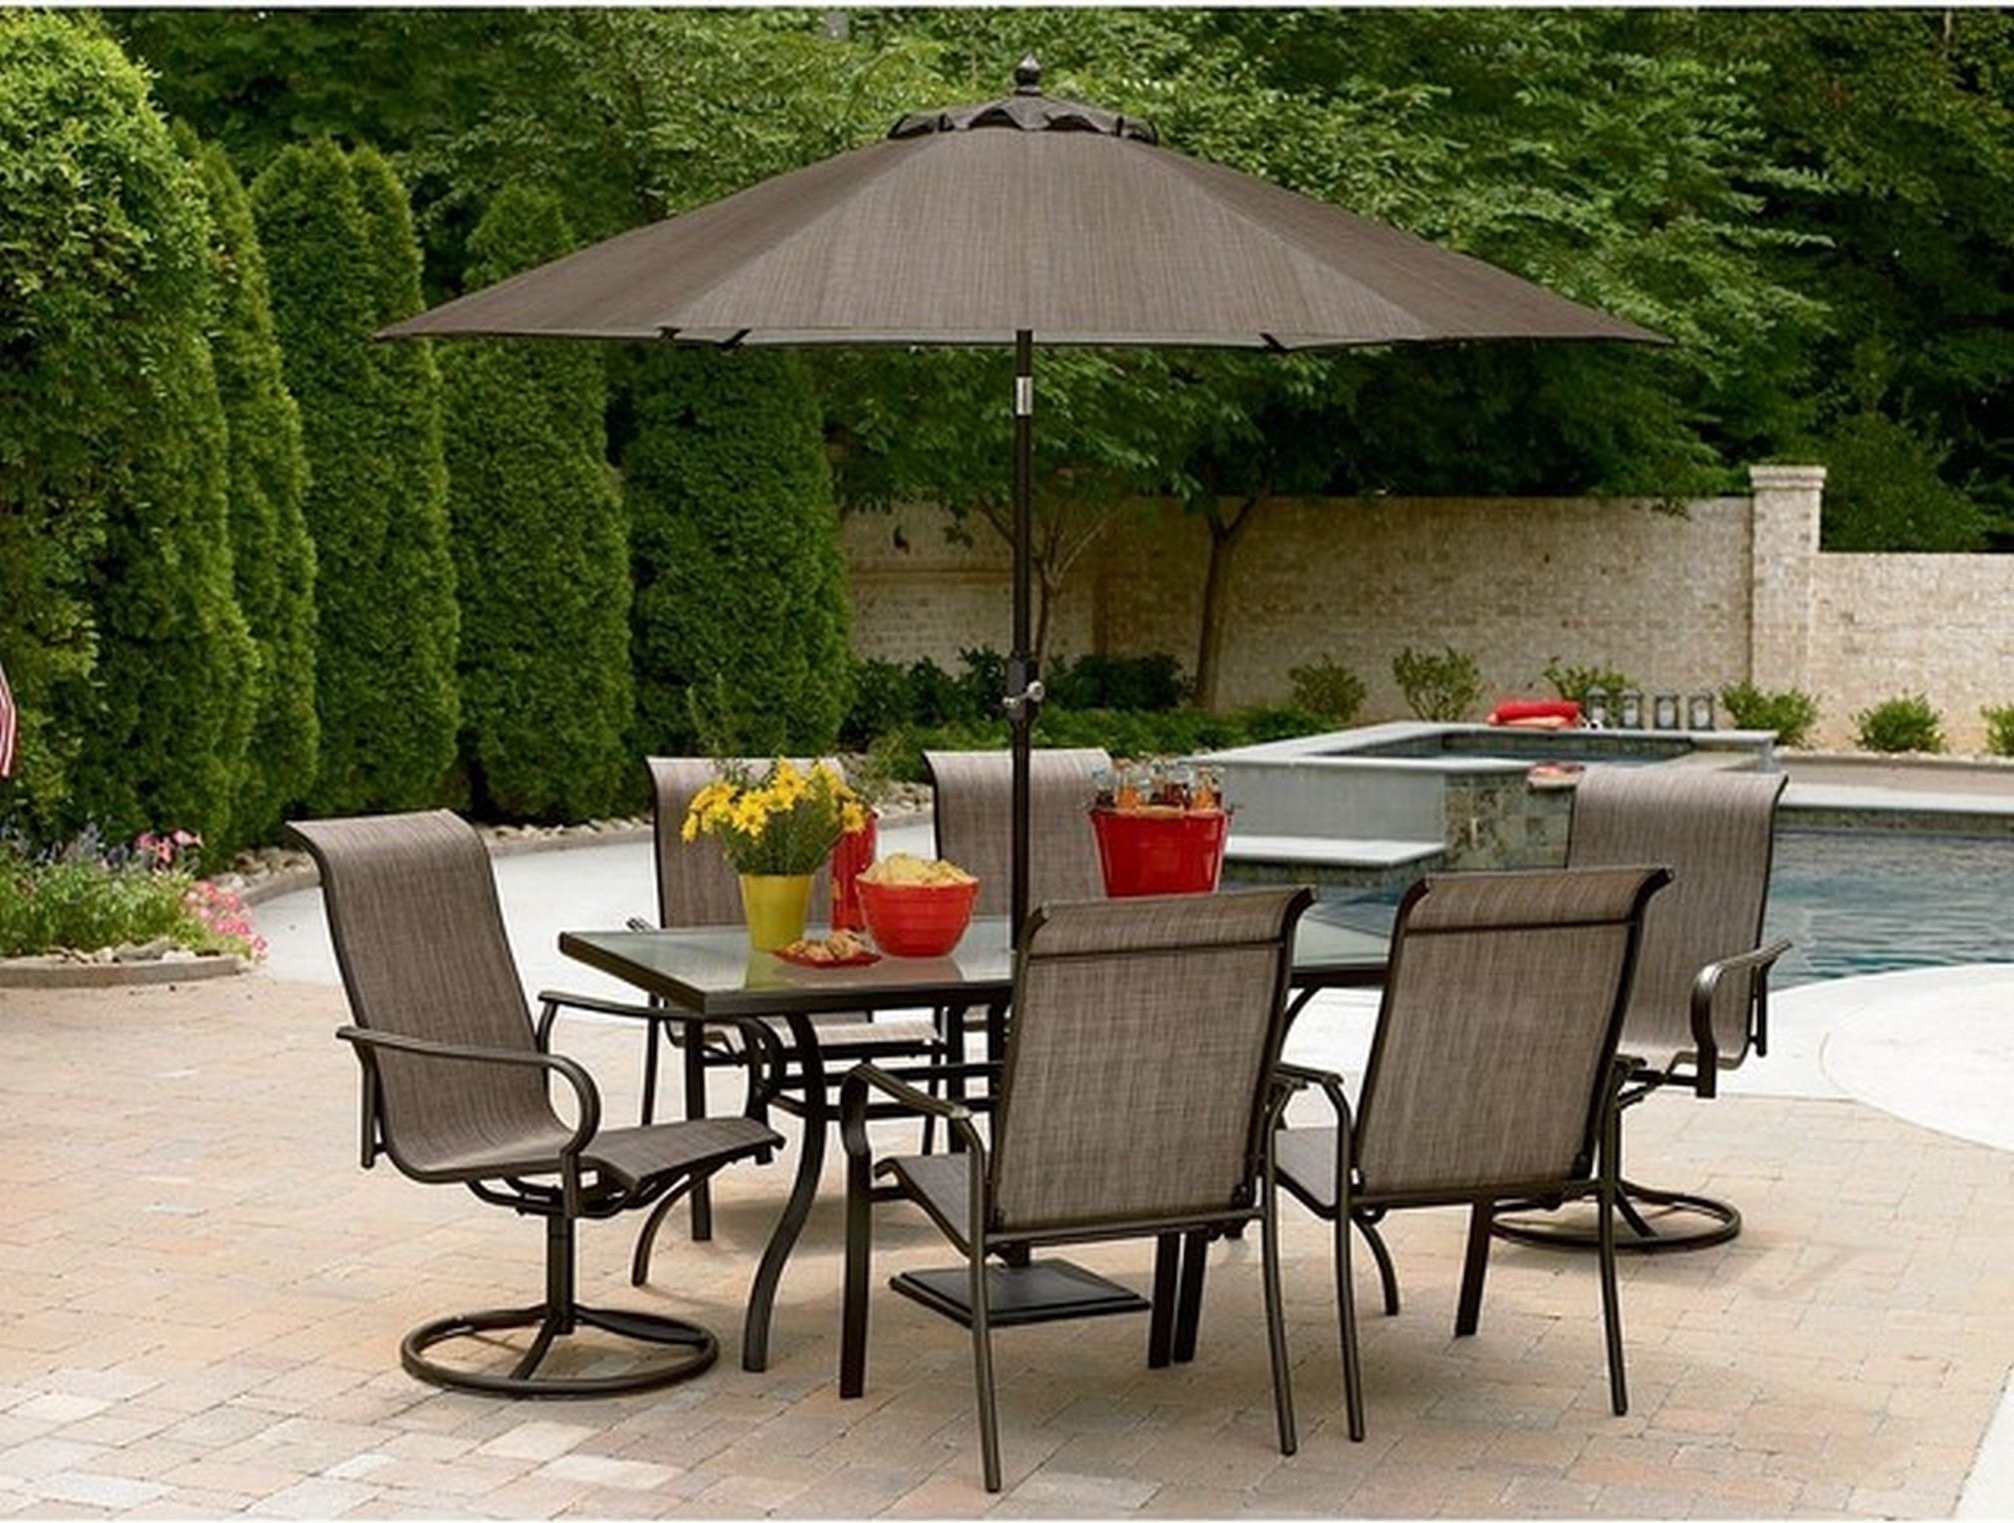 Widely Used Interior : Patio Furniture Sale Stylish Outdoor Table Sets Lovely Throughout Patio Furniture Sets With Umbrellas (View 20 of 20)